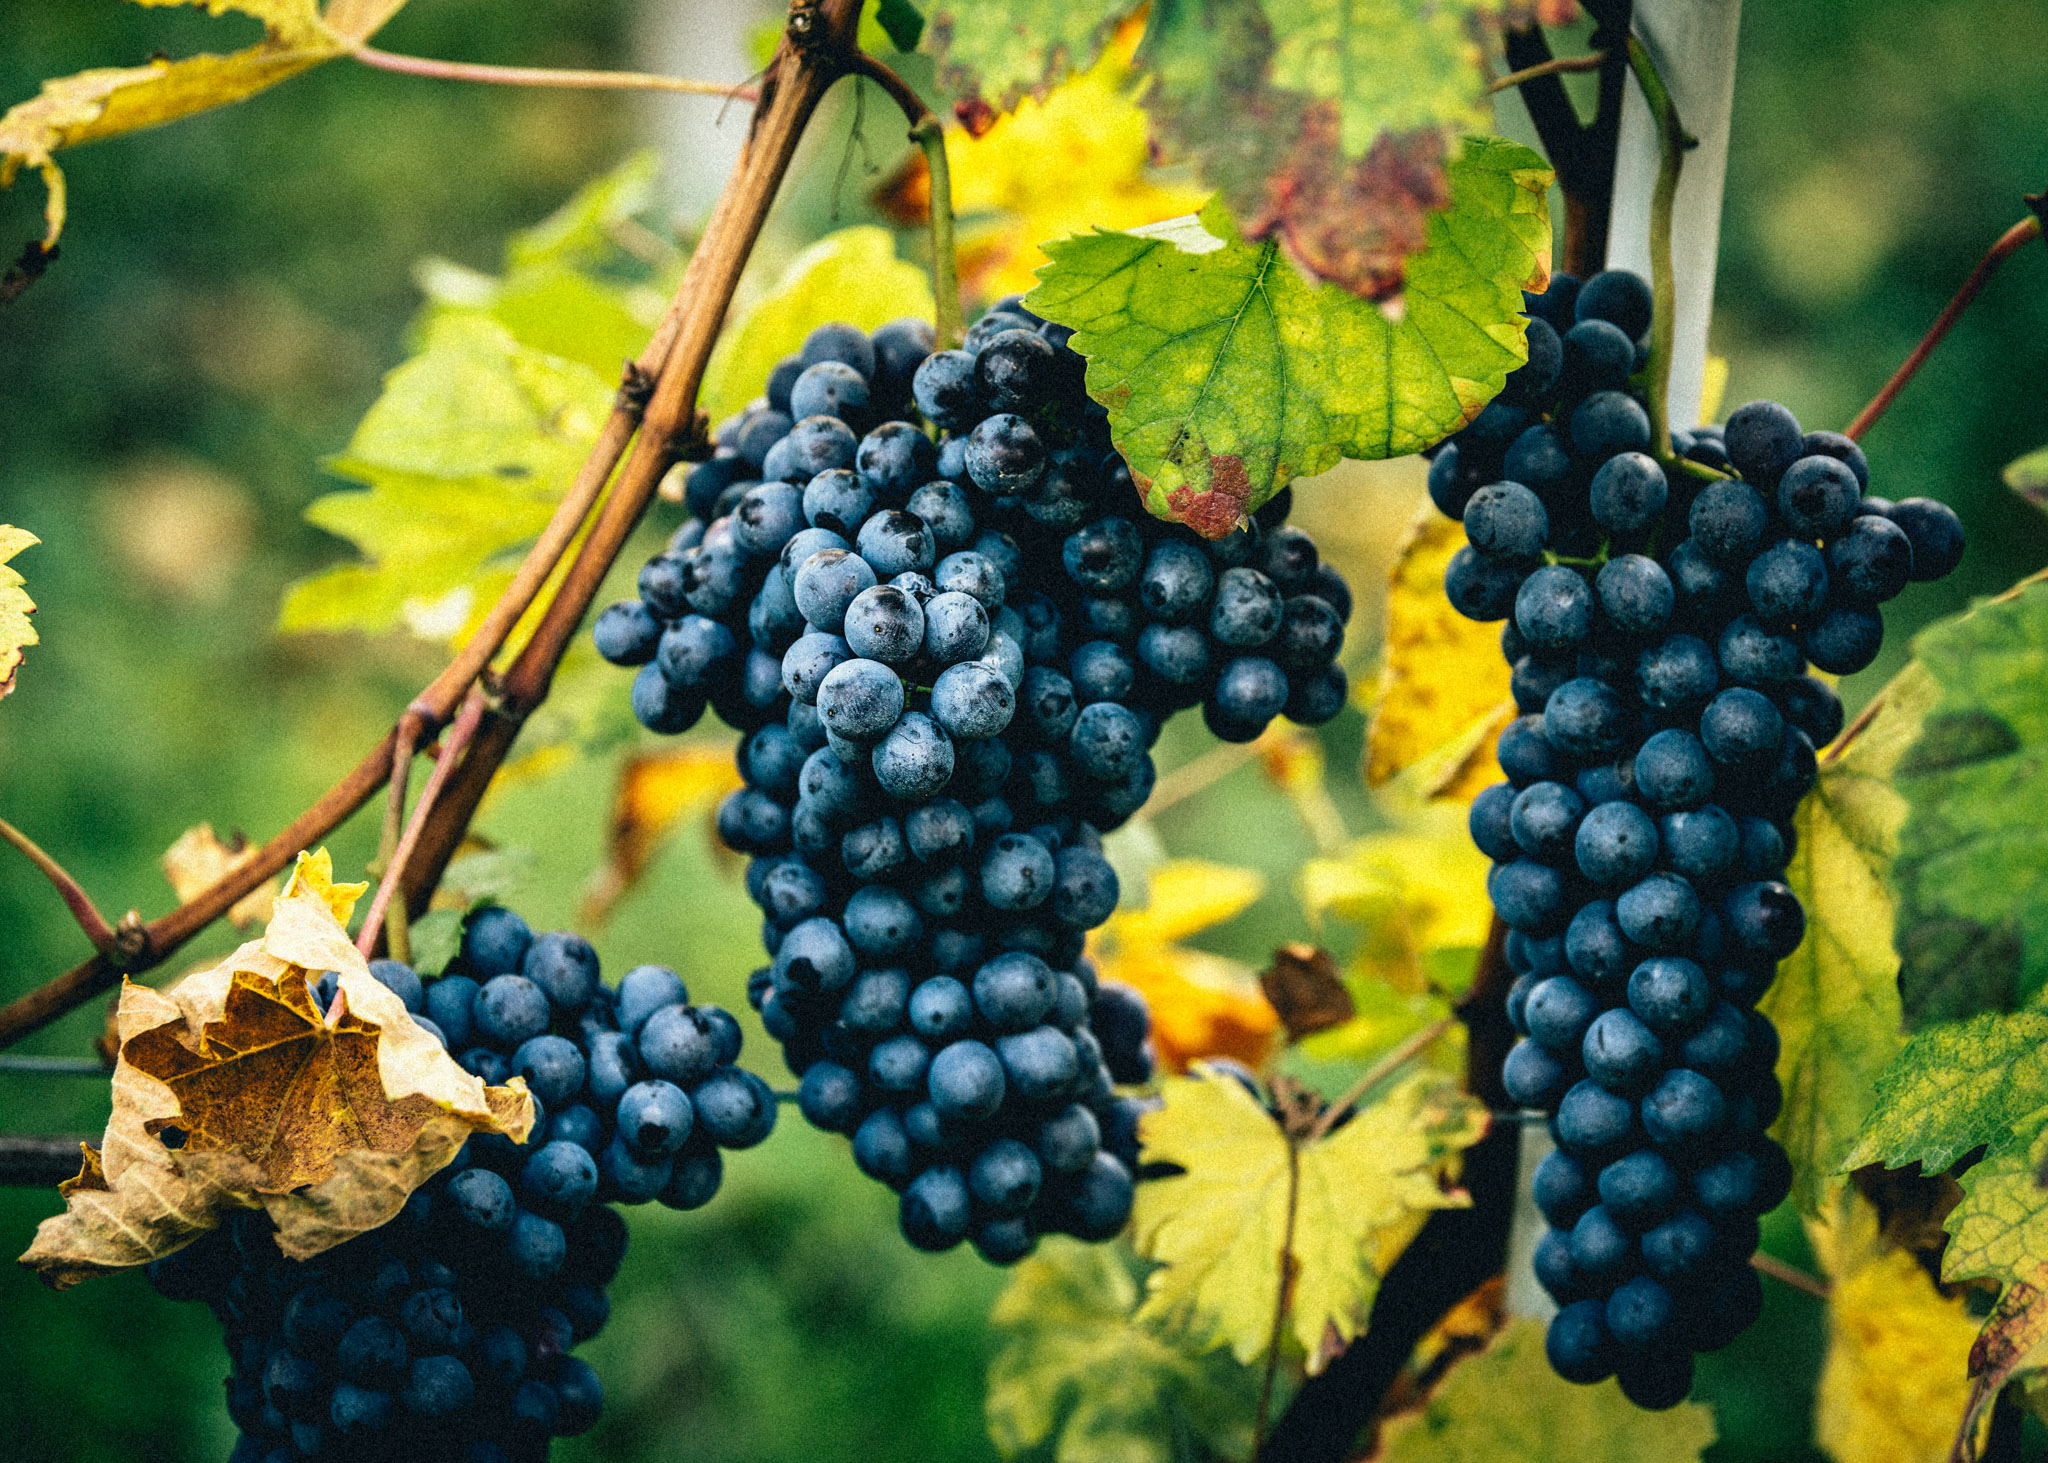 Italy : Piedmont : A perfect Nebbiolo cluster